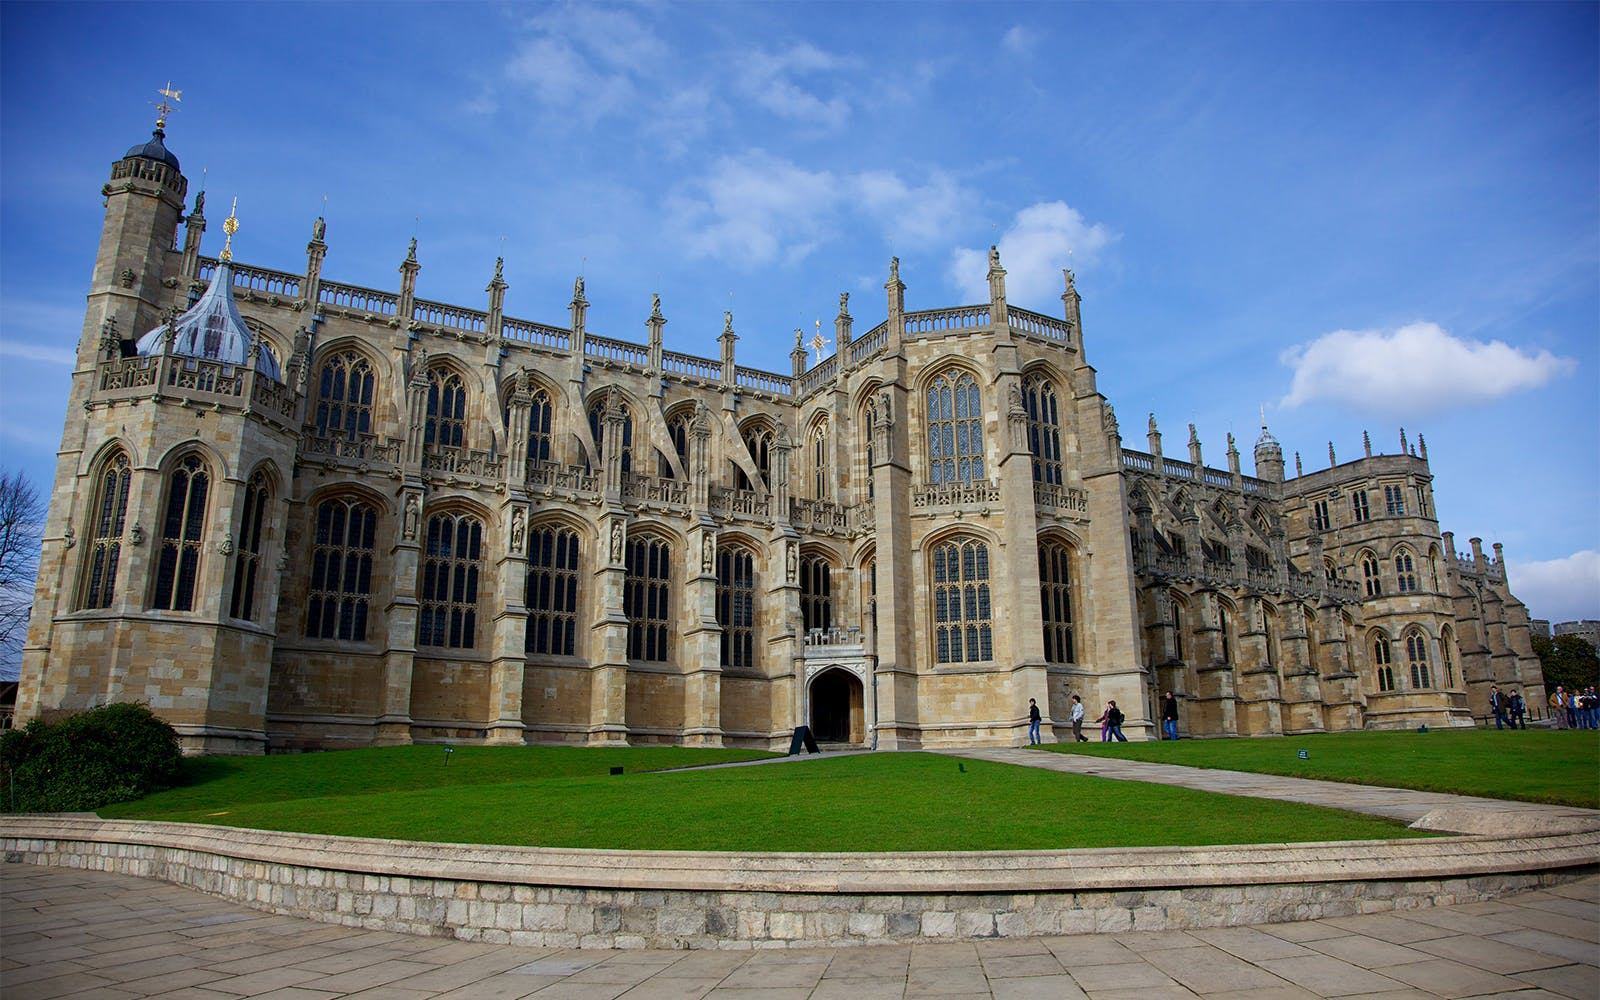 Premium Tour of Windsor Castle, Stonehenge & Bath